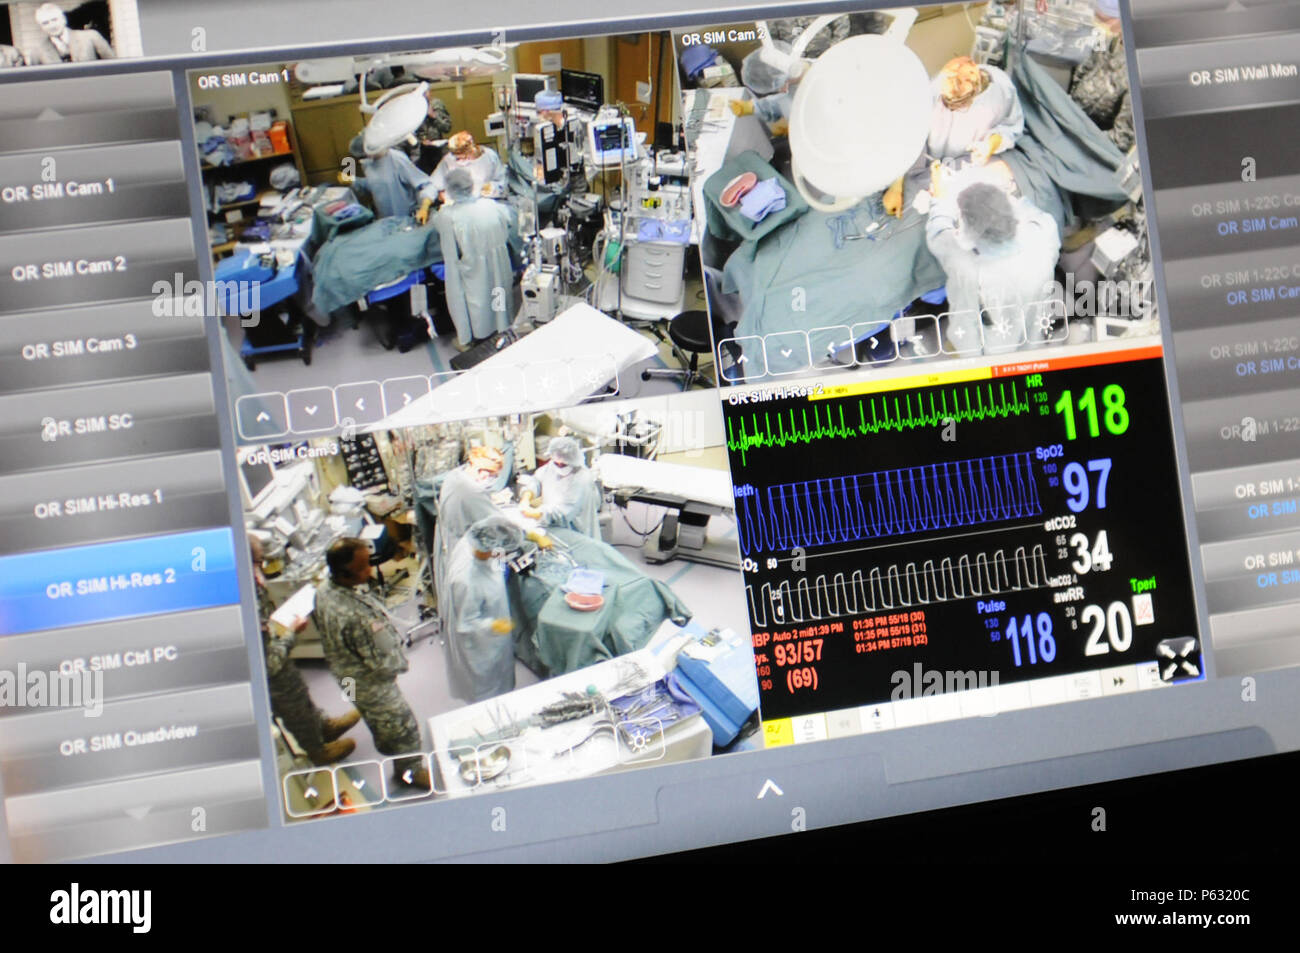 399th Combat Support Hospital Stock Photos & 399th Combat Support